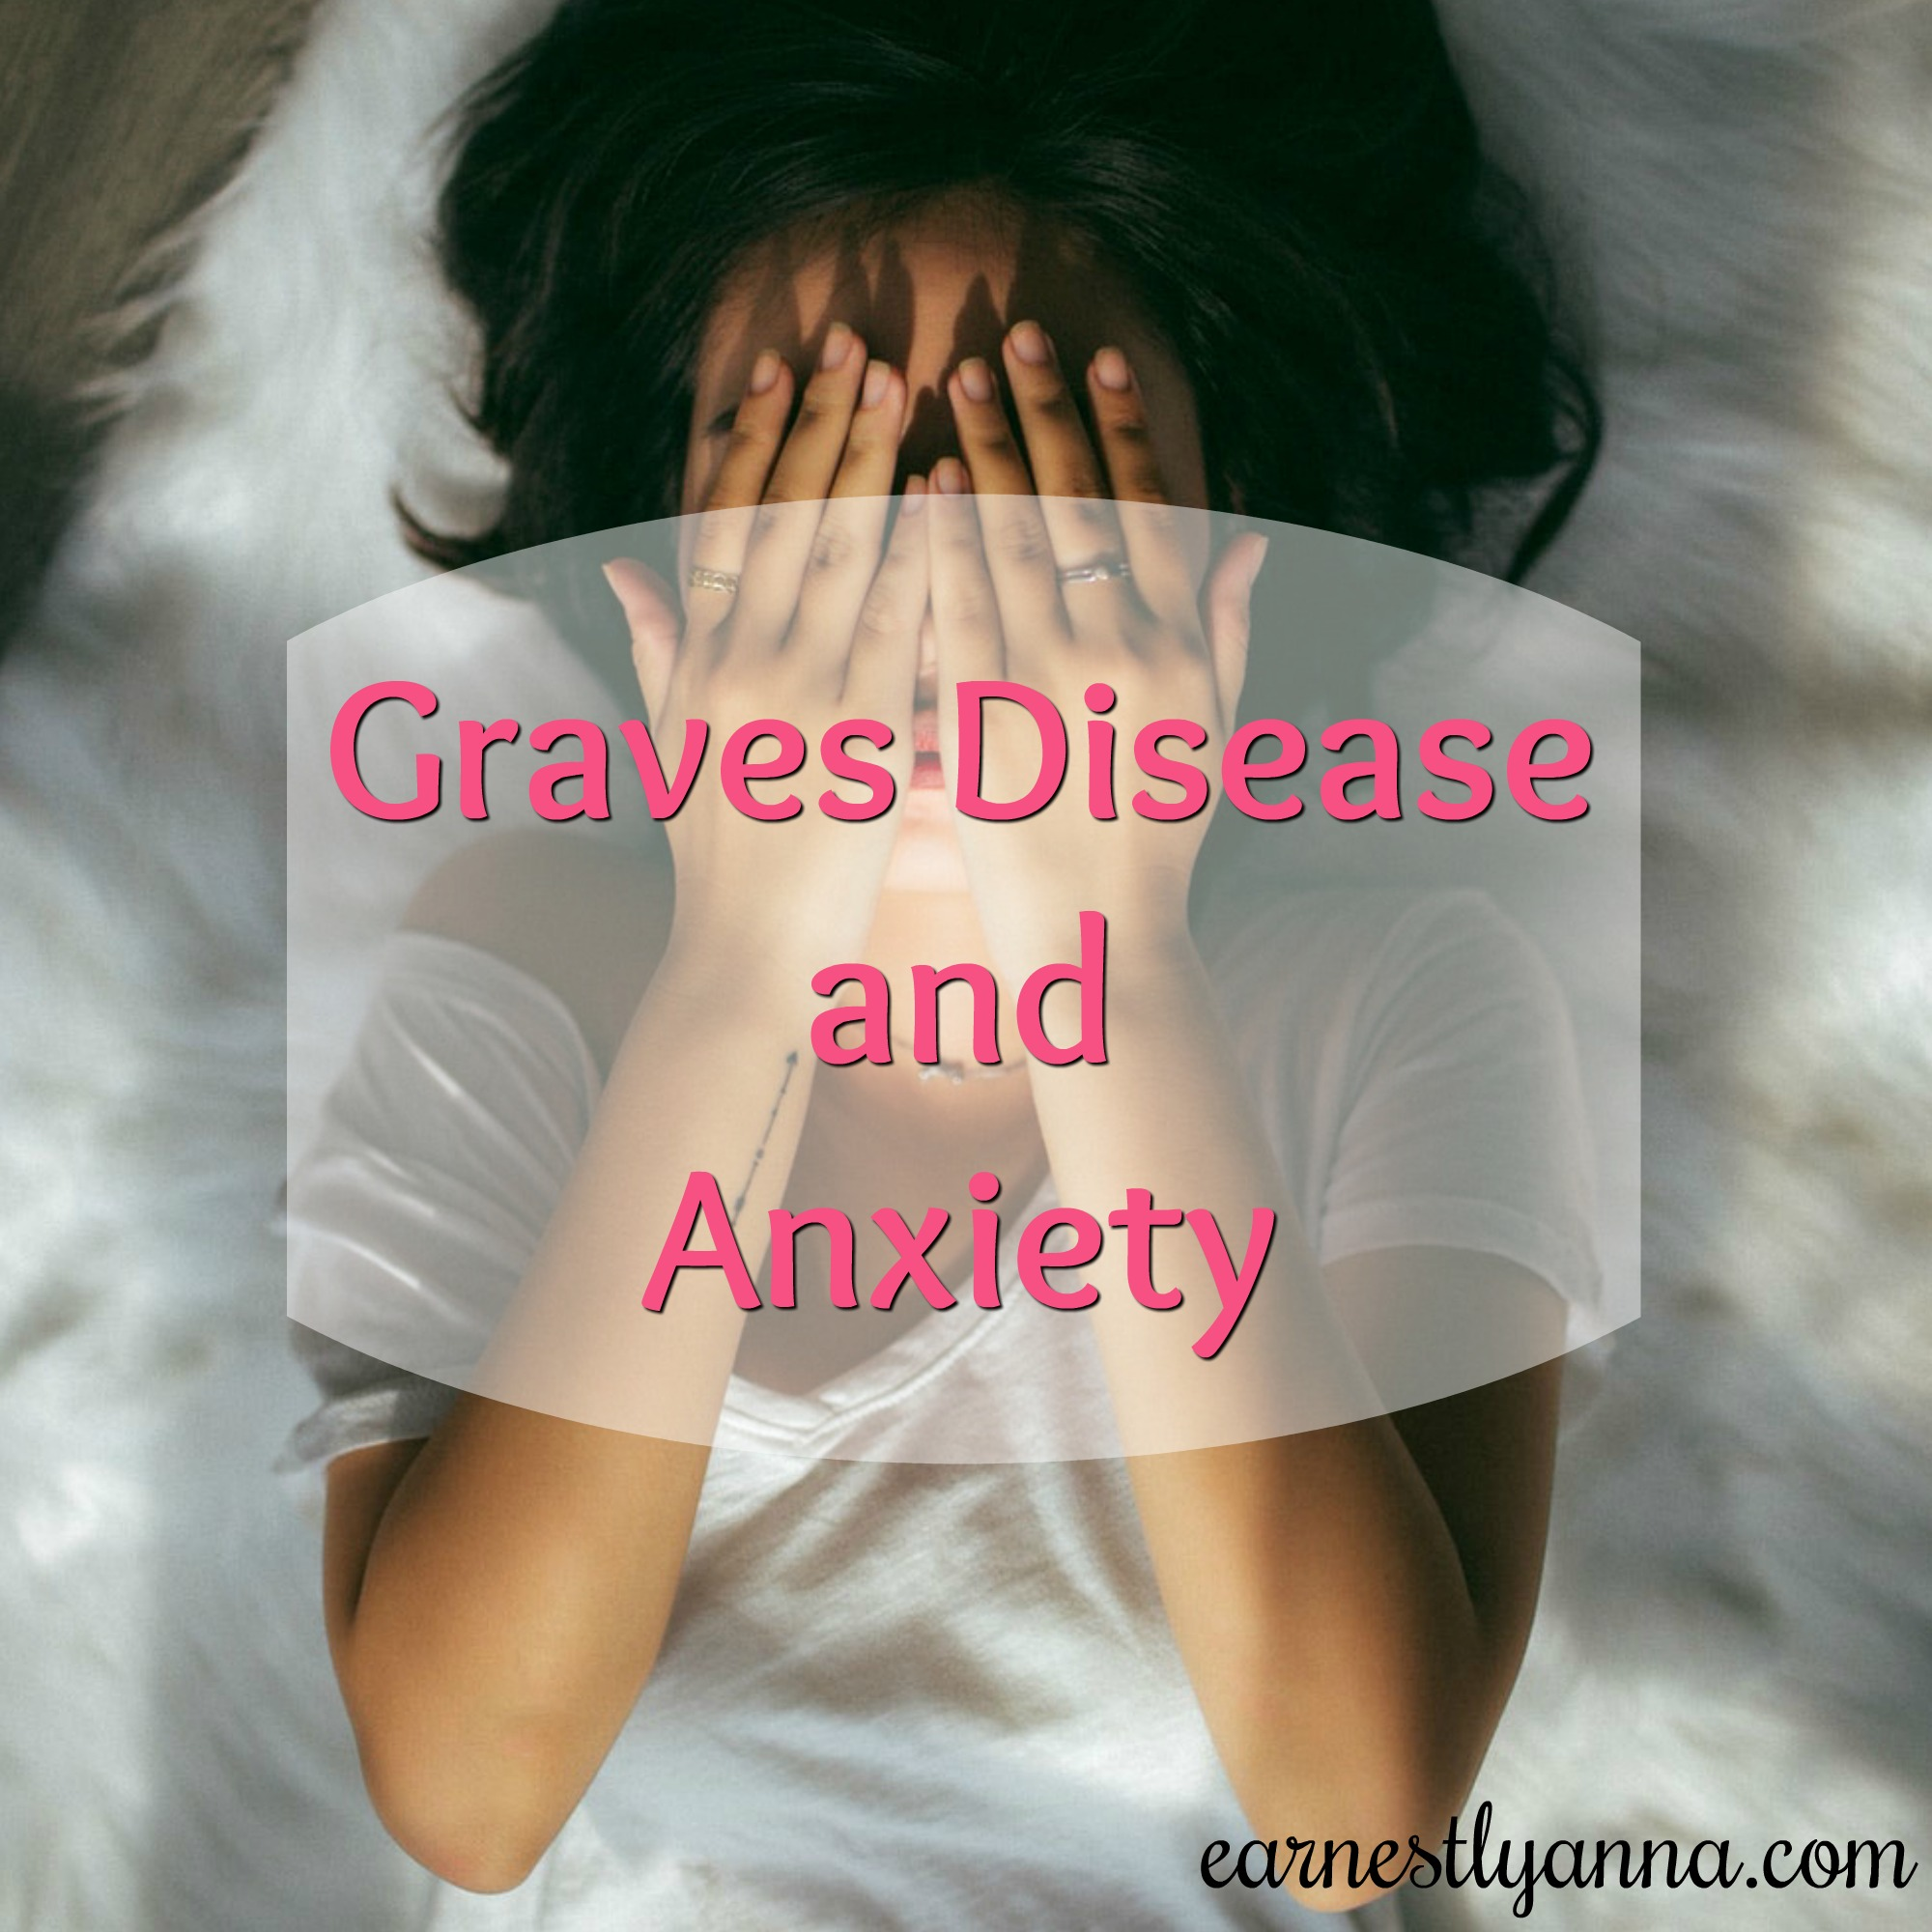 graves-disease-and-anxiety